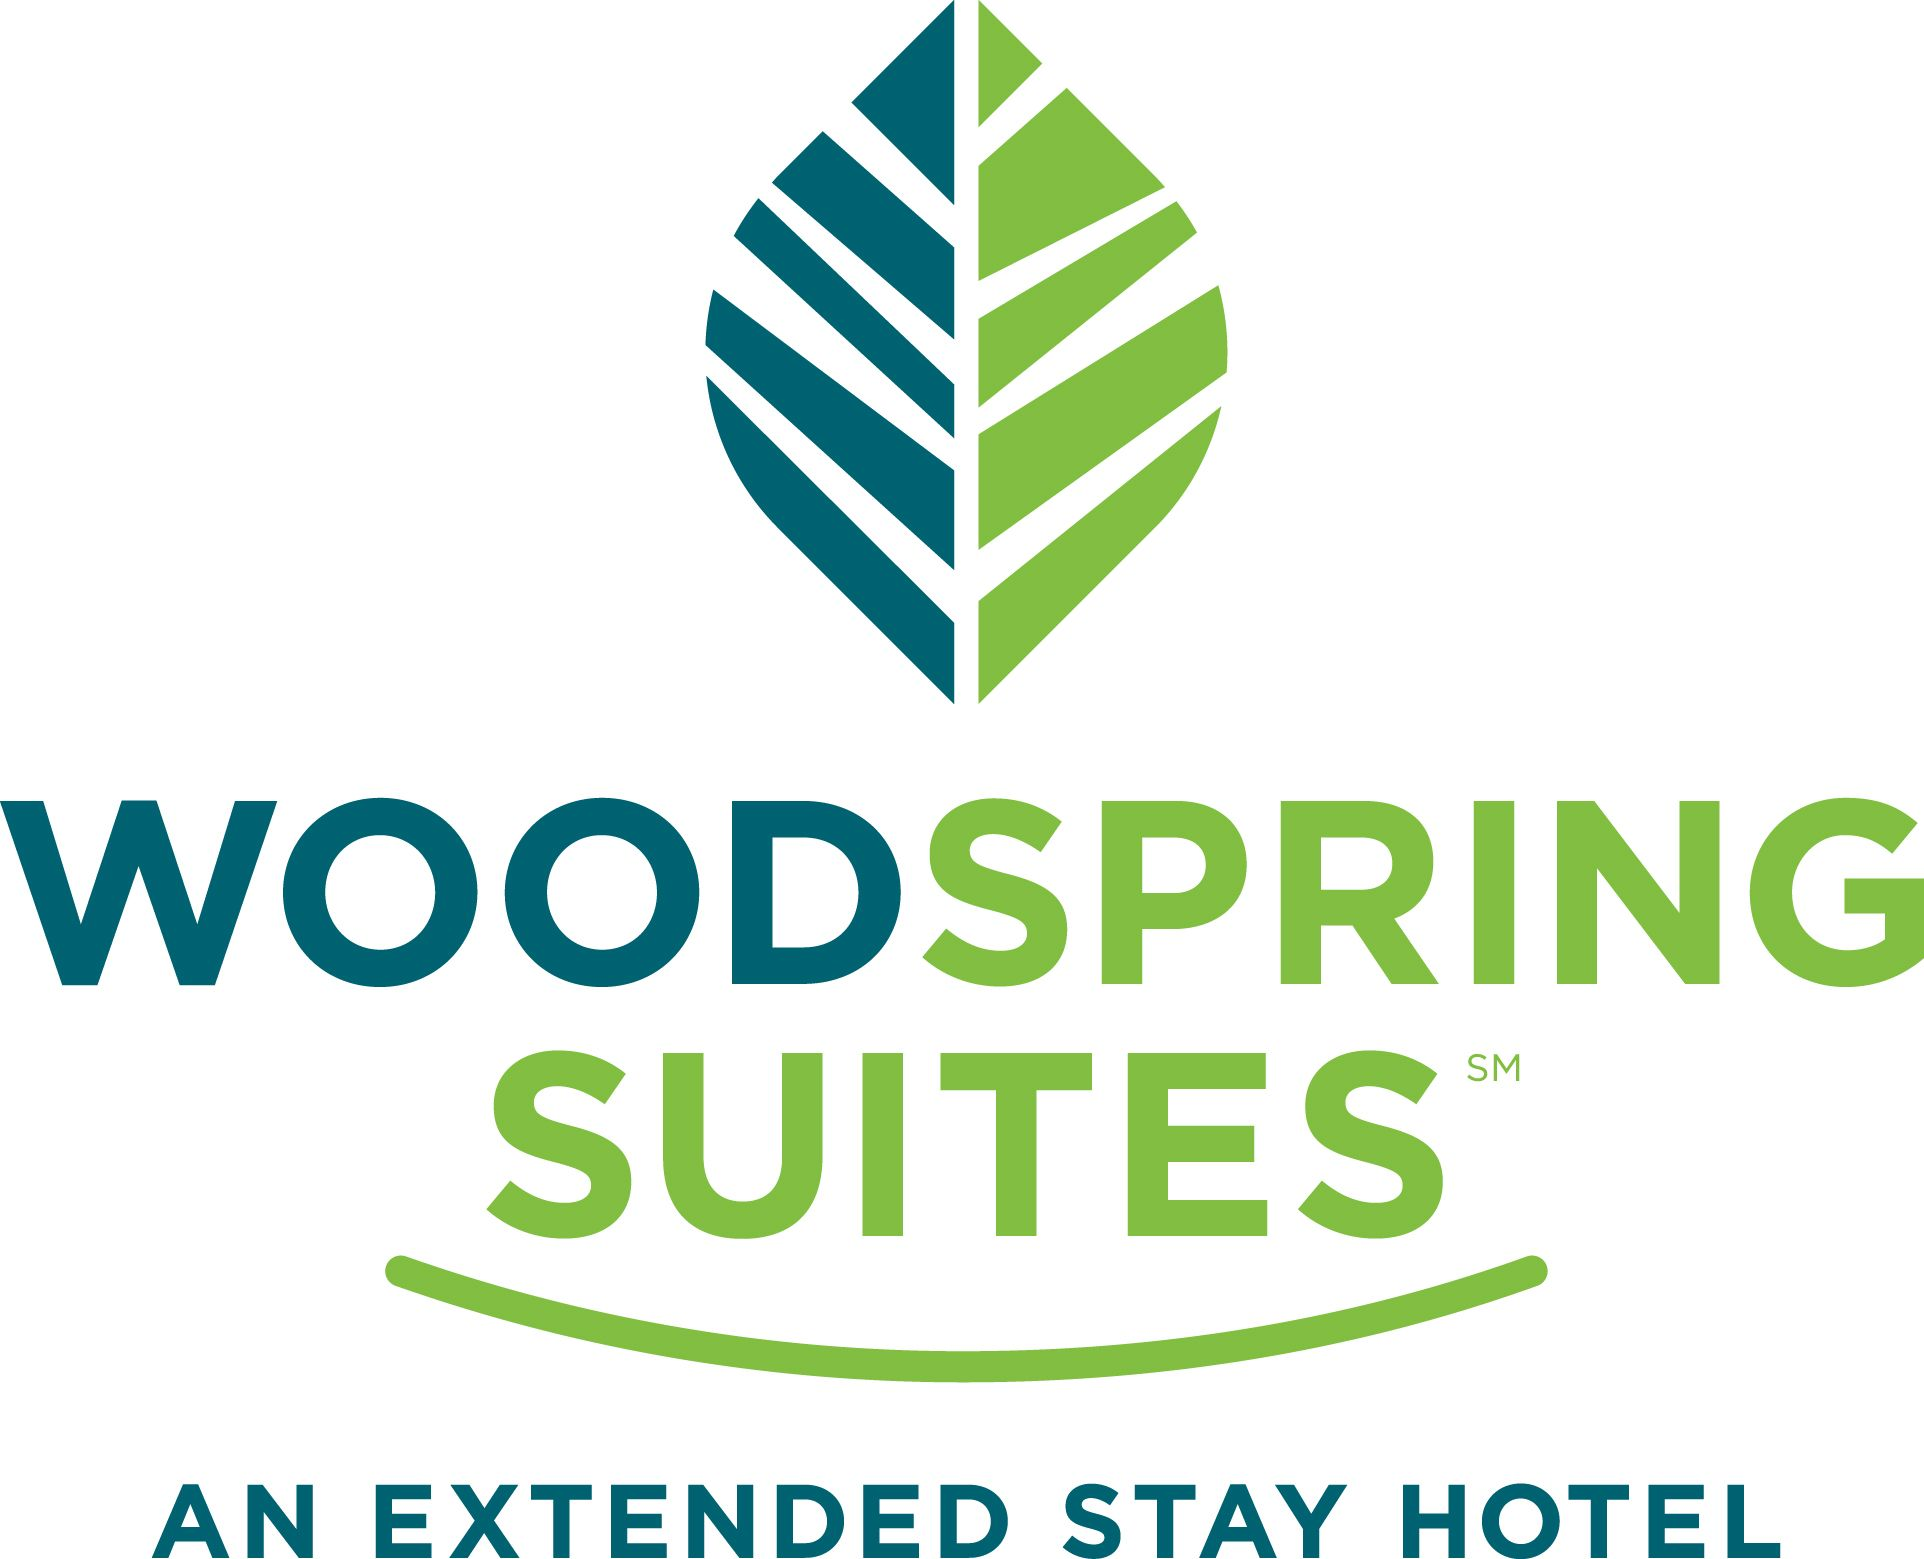 Woodspring Suites